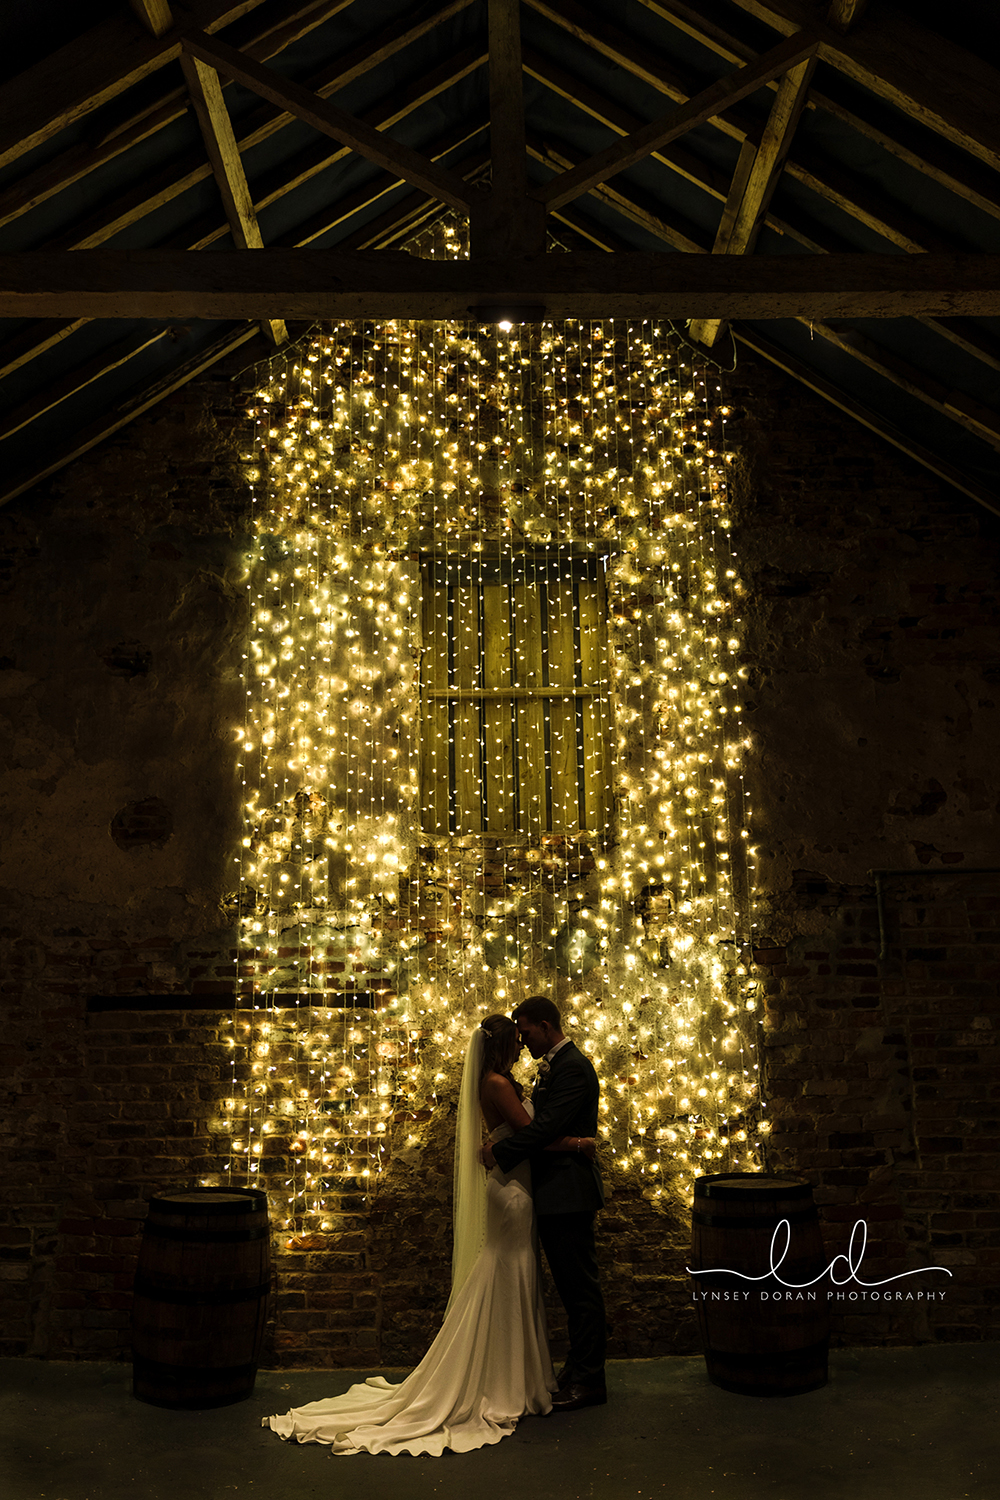 Wedding Photographs The Normans York | Weddings The Normans York-3